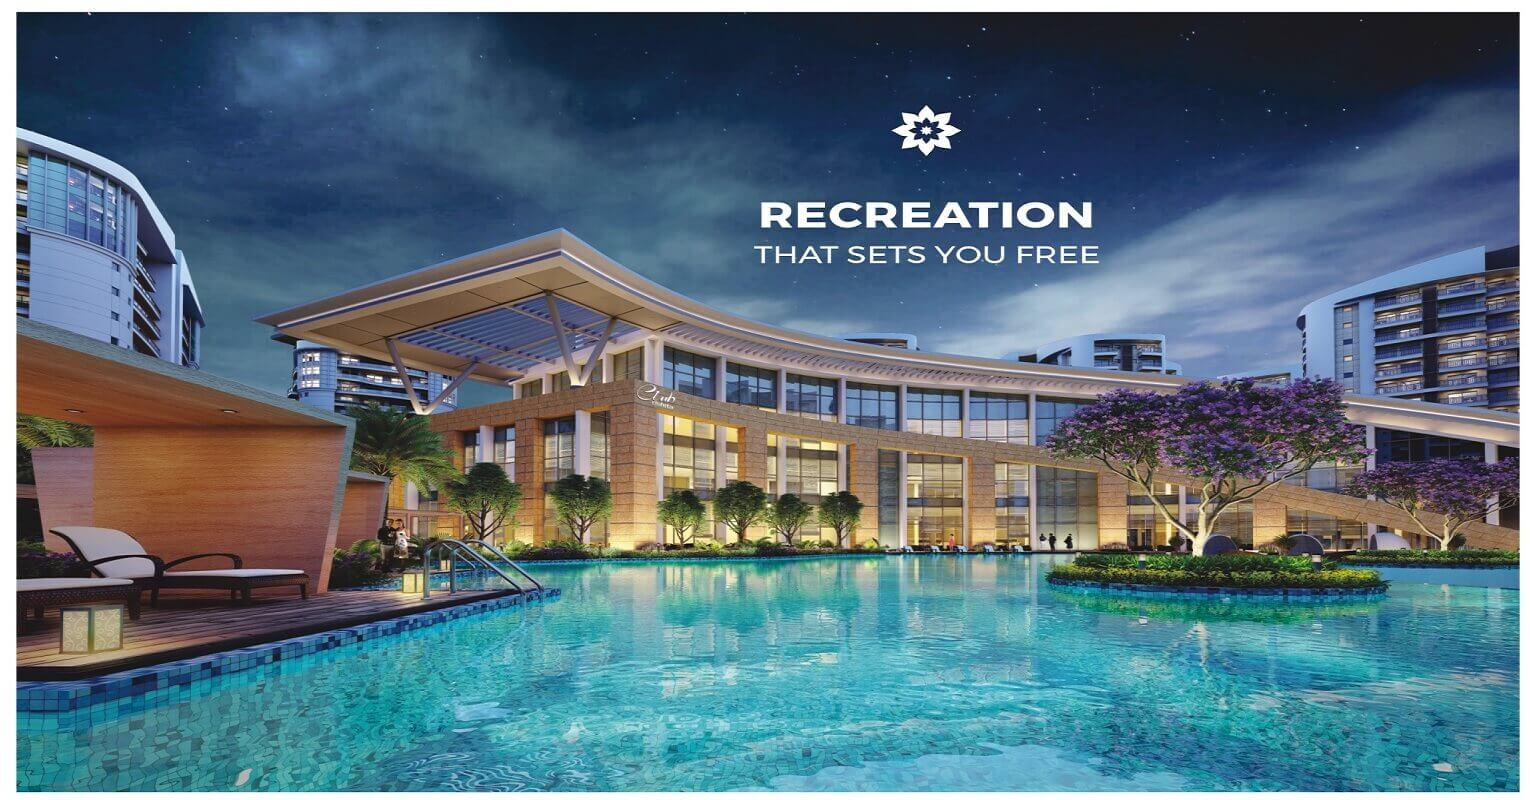 rishita mulberry heights amenities features2